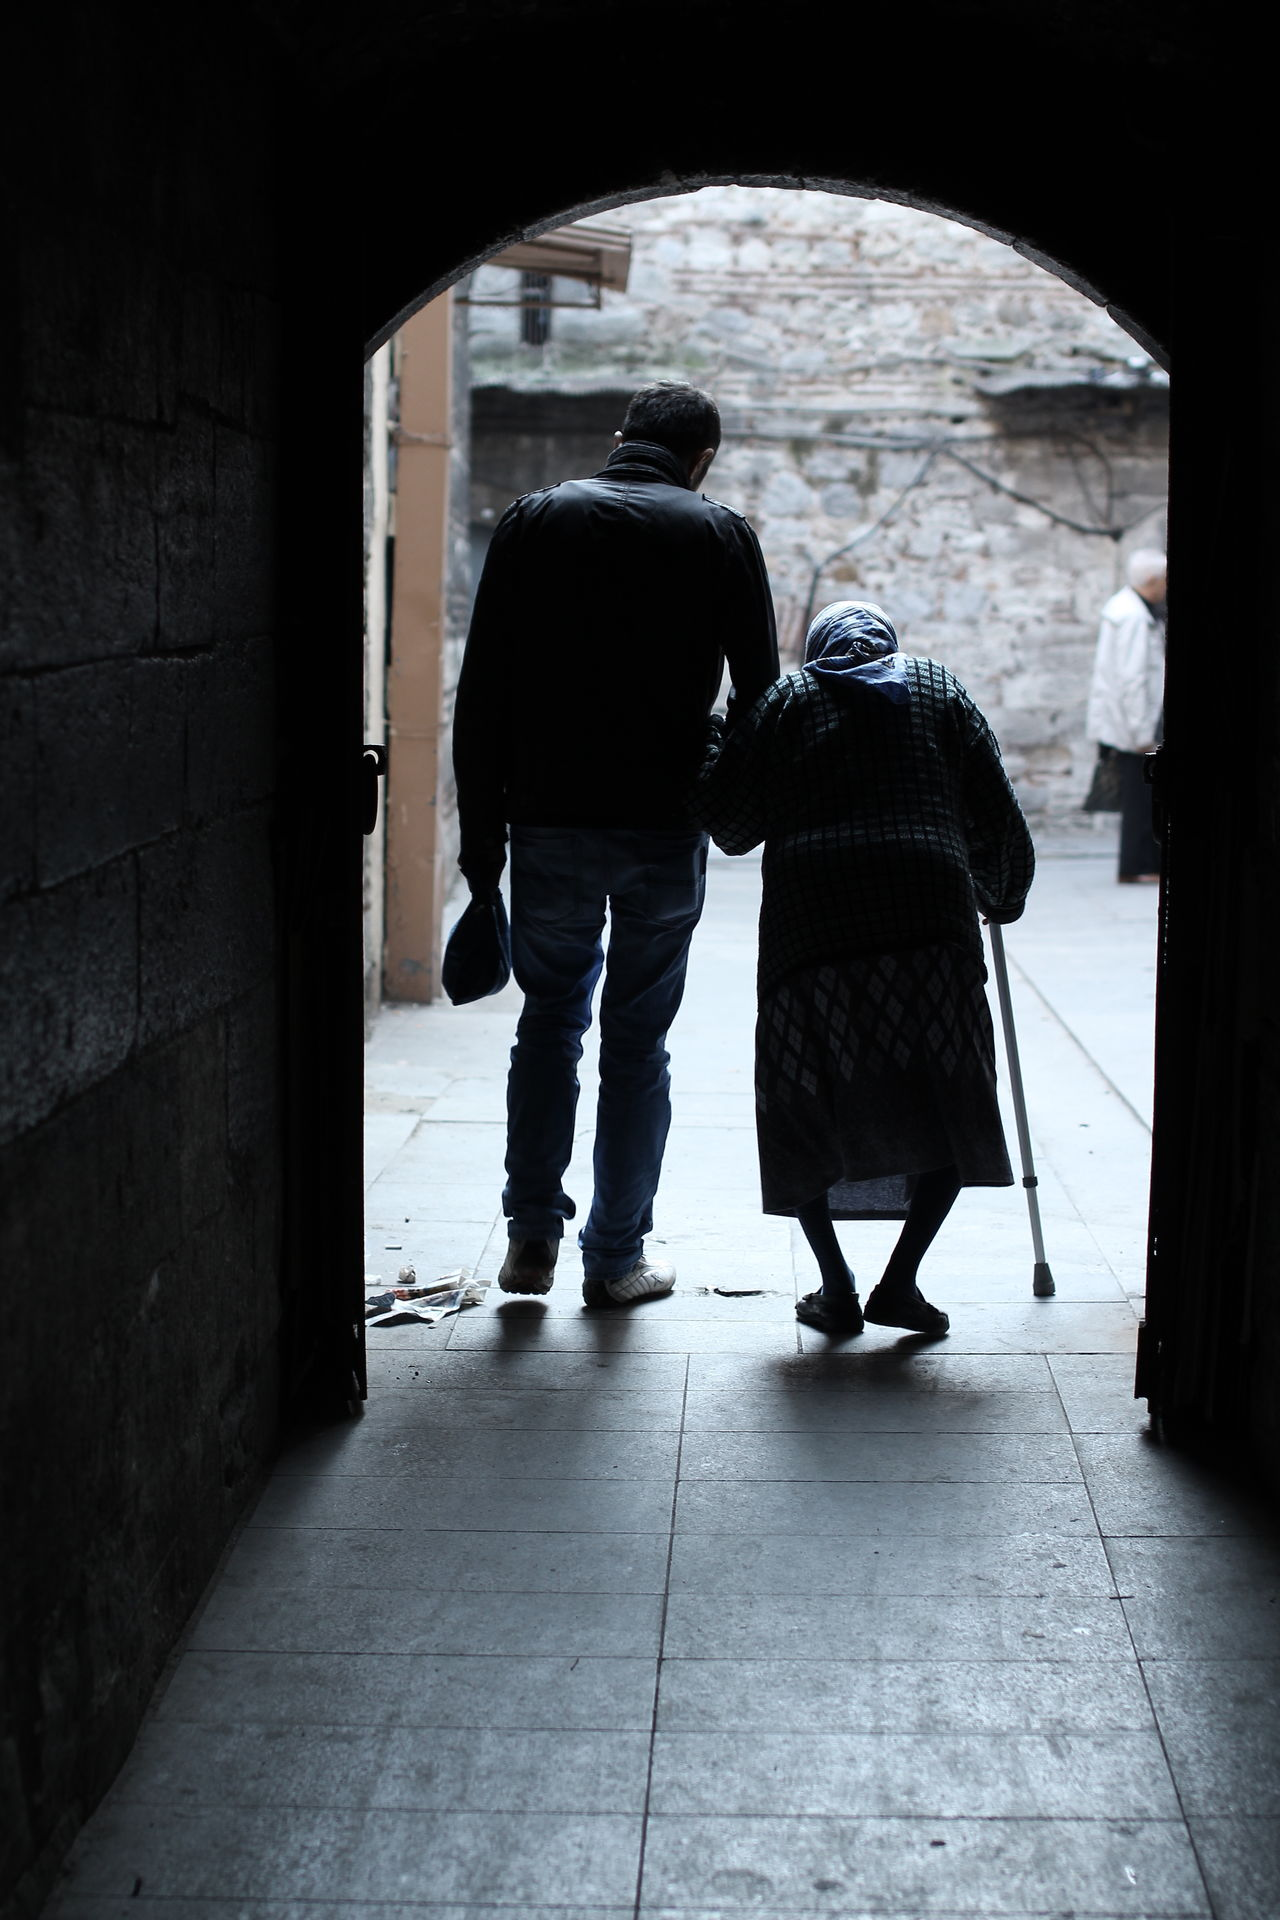 Full Length Melancholic Silhouette Rear View Togetherness Family Elderly Woman Love Caring For The Elderly Old Age Helping Hand Affection Tenderness Respect The Elders Capture The Moment